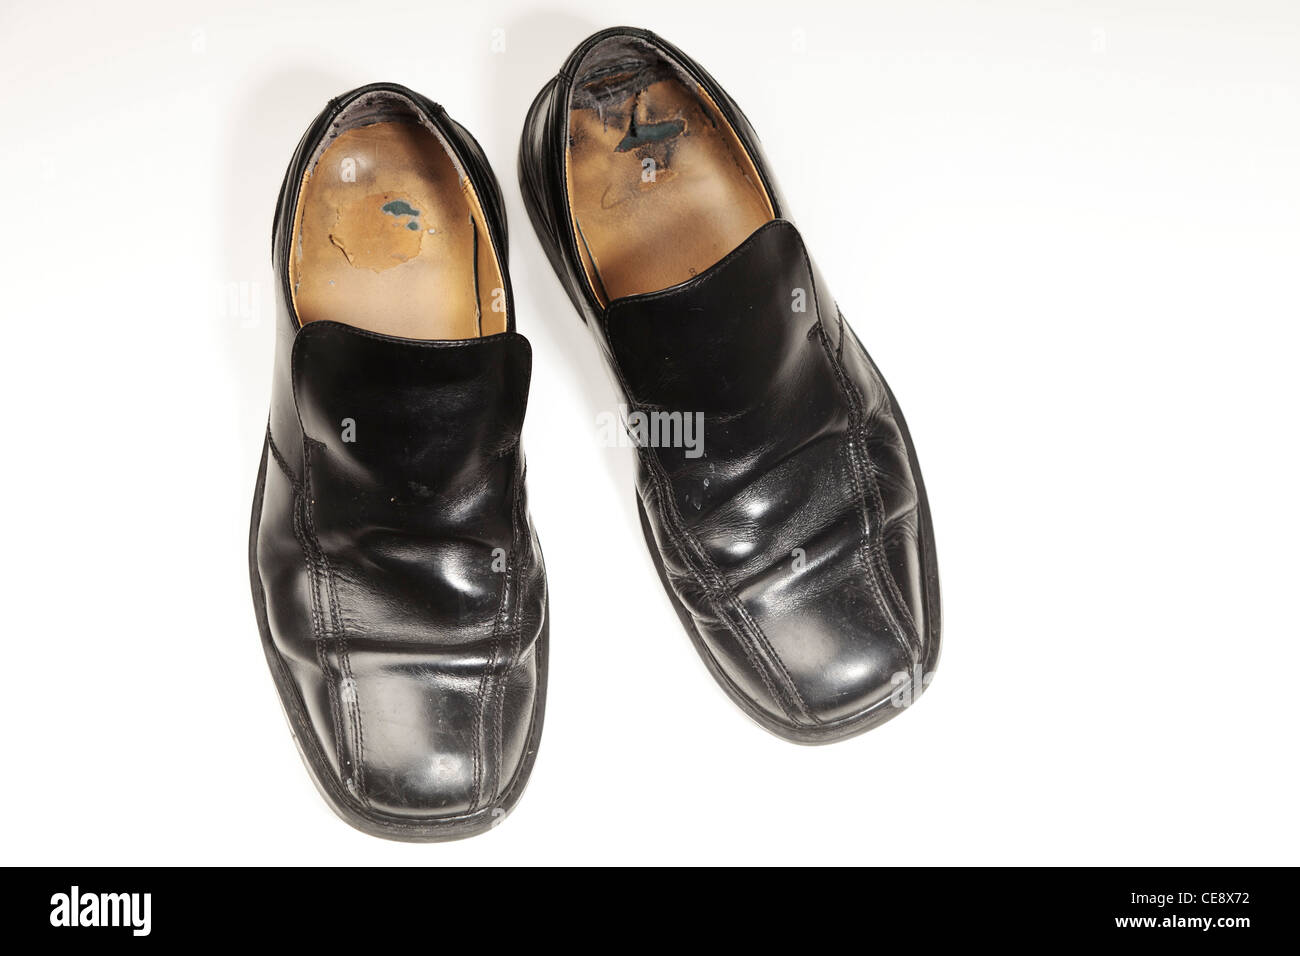 Pair of old worn out gents black shoes photographed on white - Stock Image